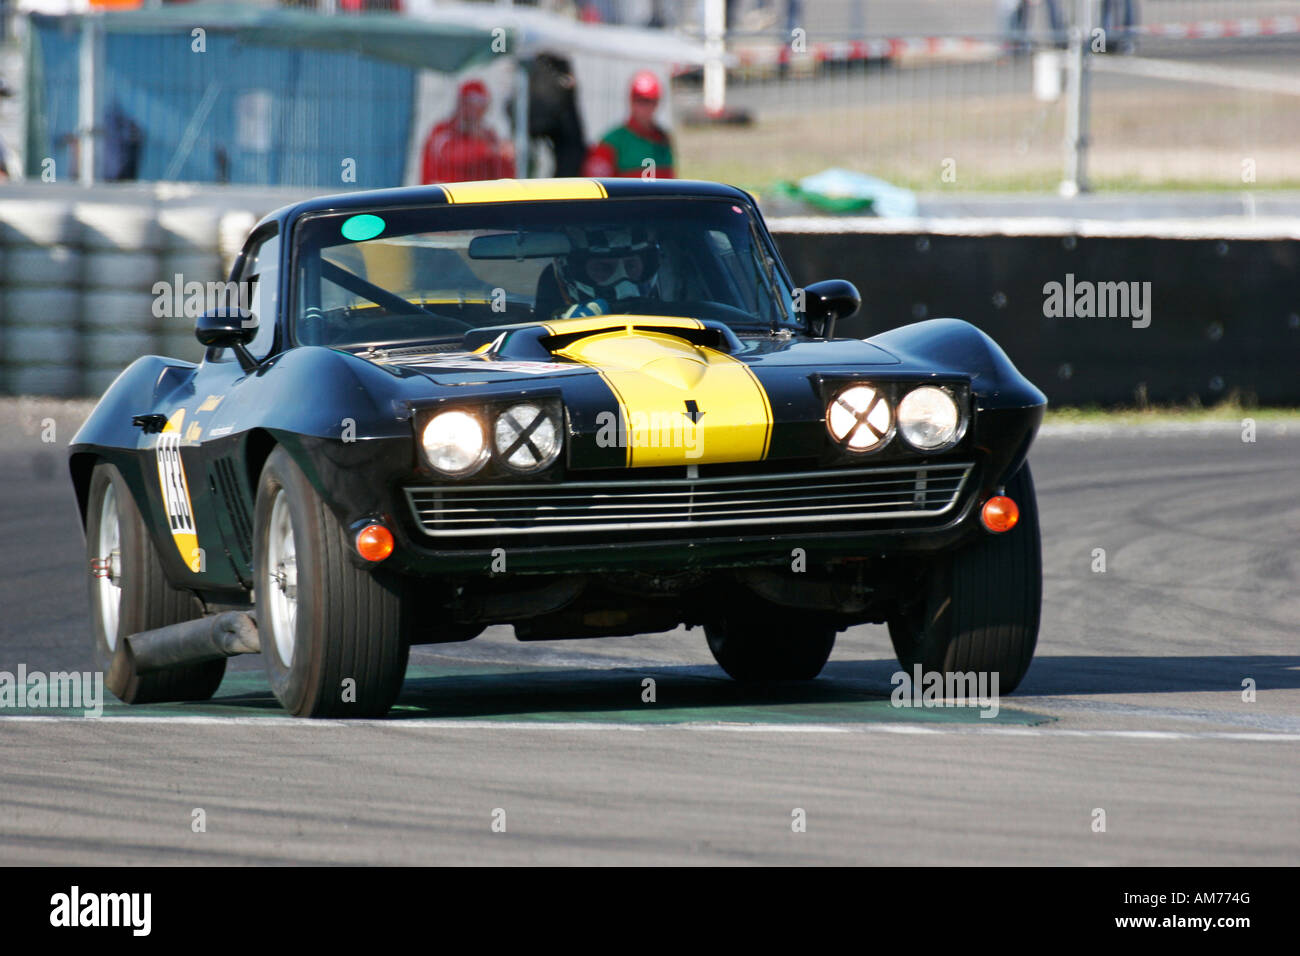 American Race Cars Stock Photos & American Race Cars Stock Images ...